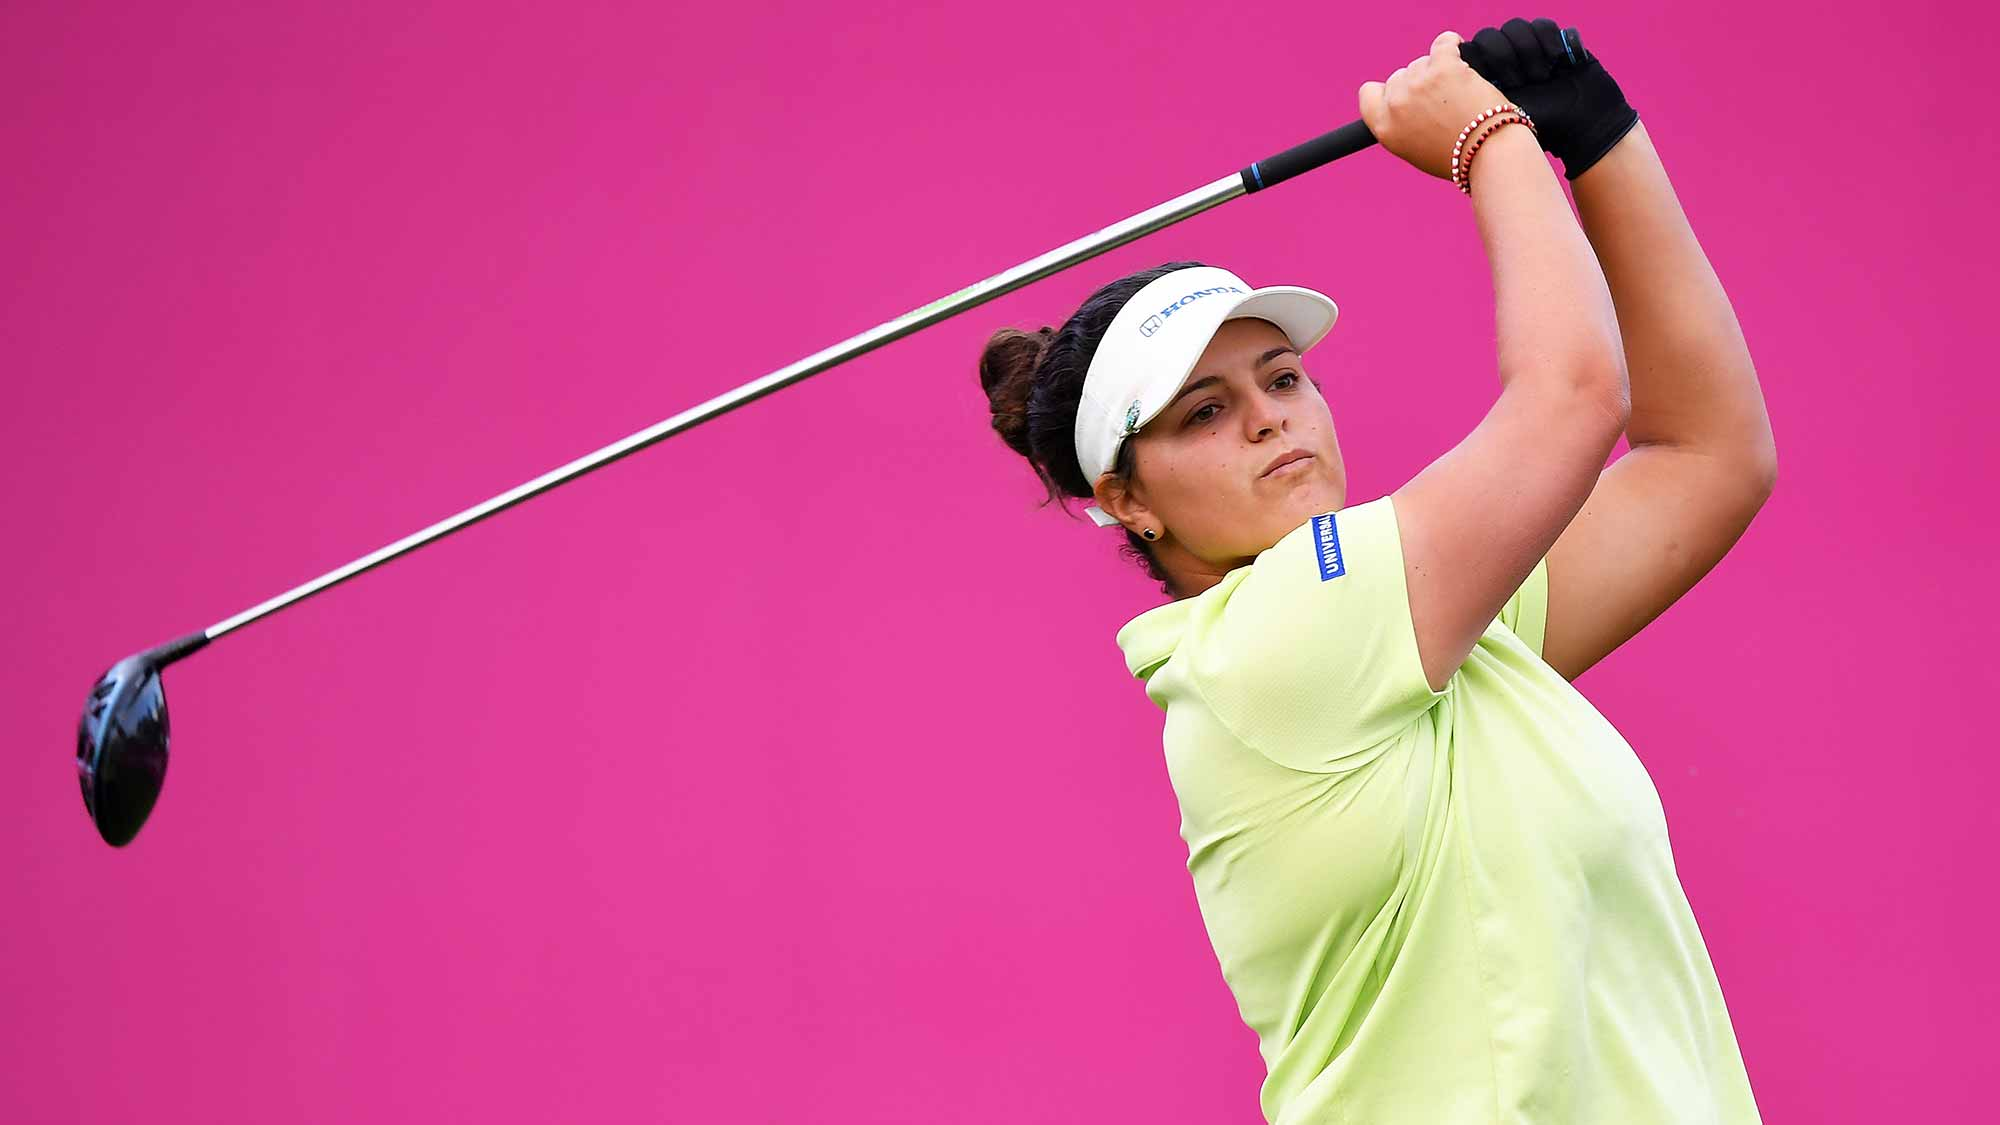 Maria Torres of Puerto Rico tees off during day two of the Evian Championship at Evian Resort Golf Club on September 14, 2018 in Evian-les-Bains, France